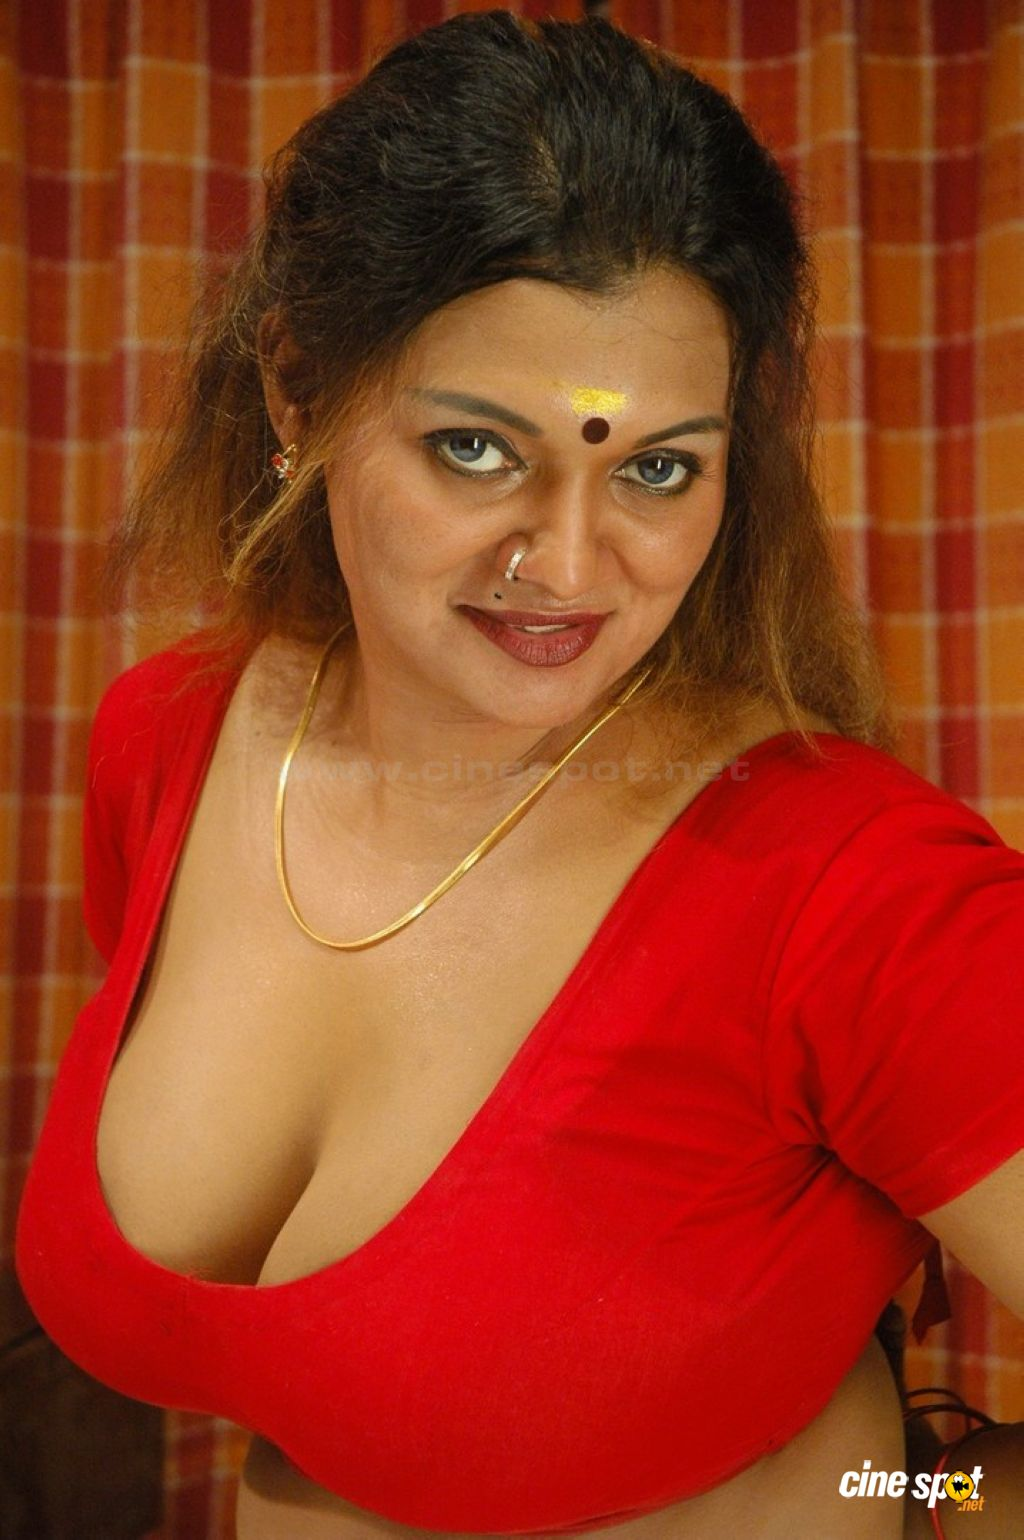 Image search: sheela mallu masala aunty navel boobs blouse saree desi